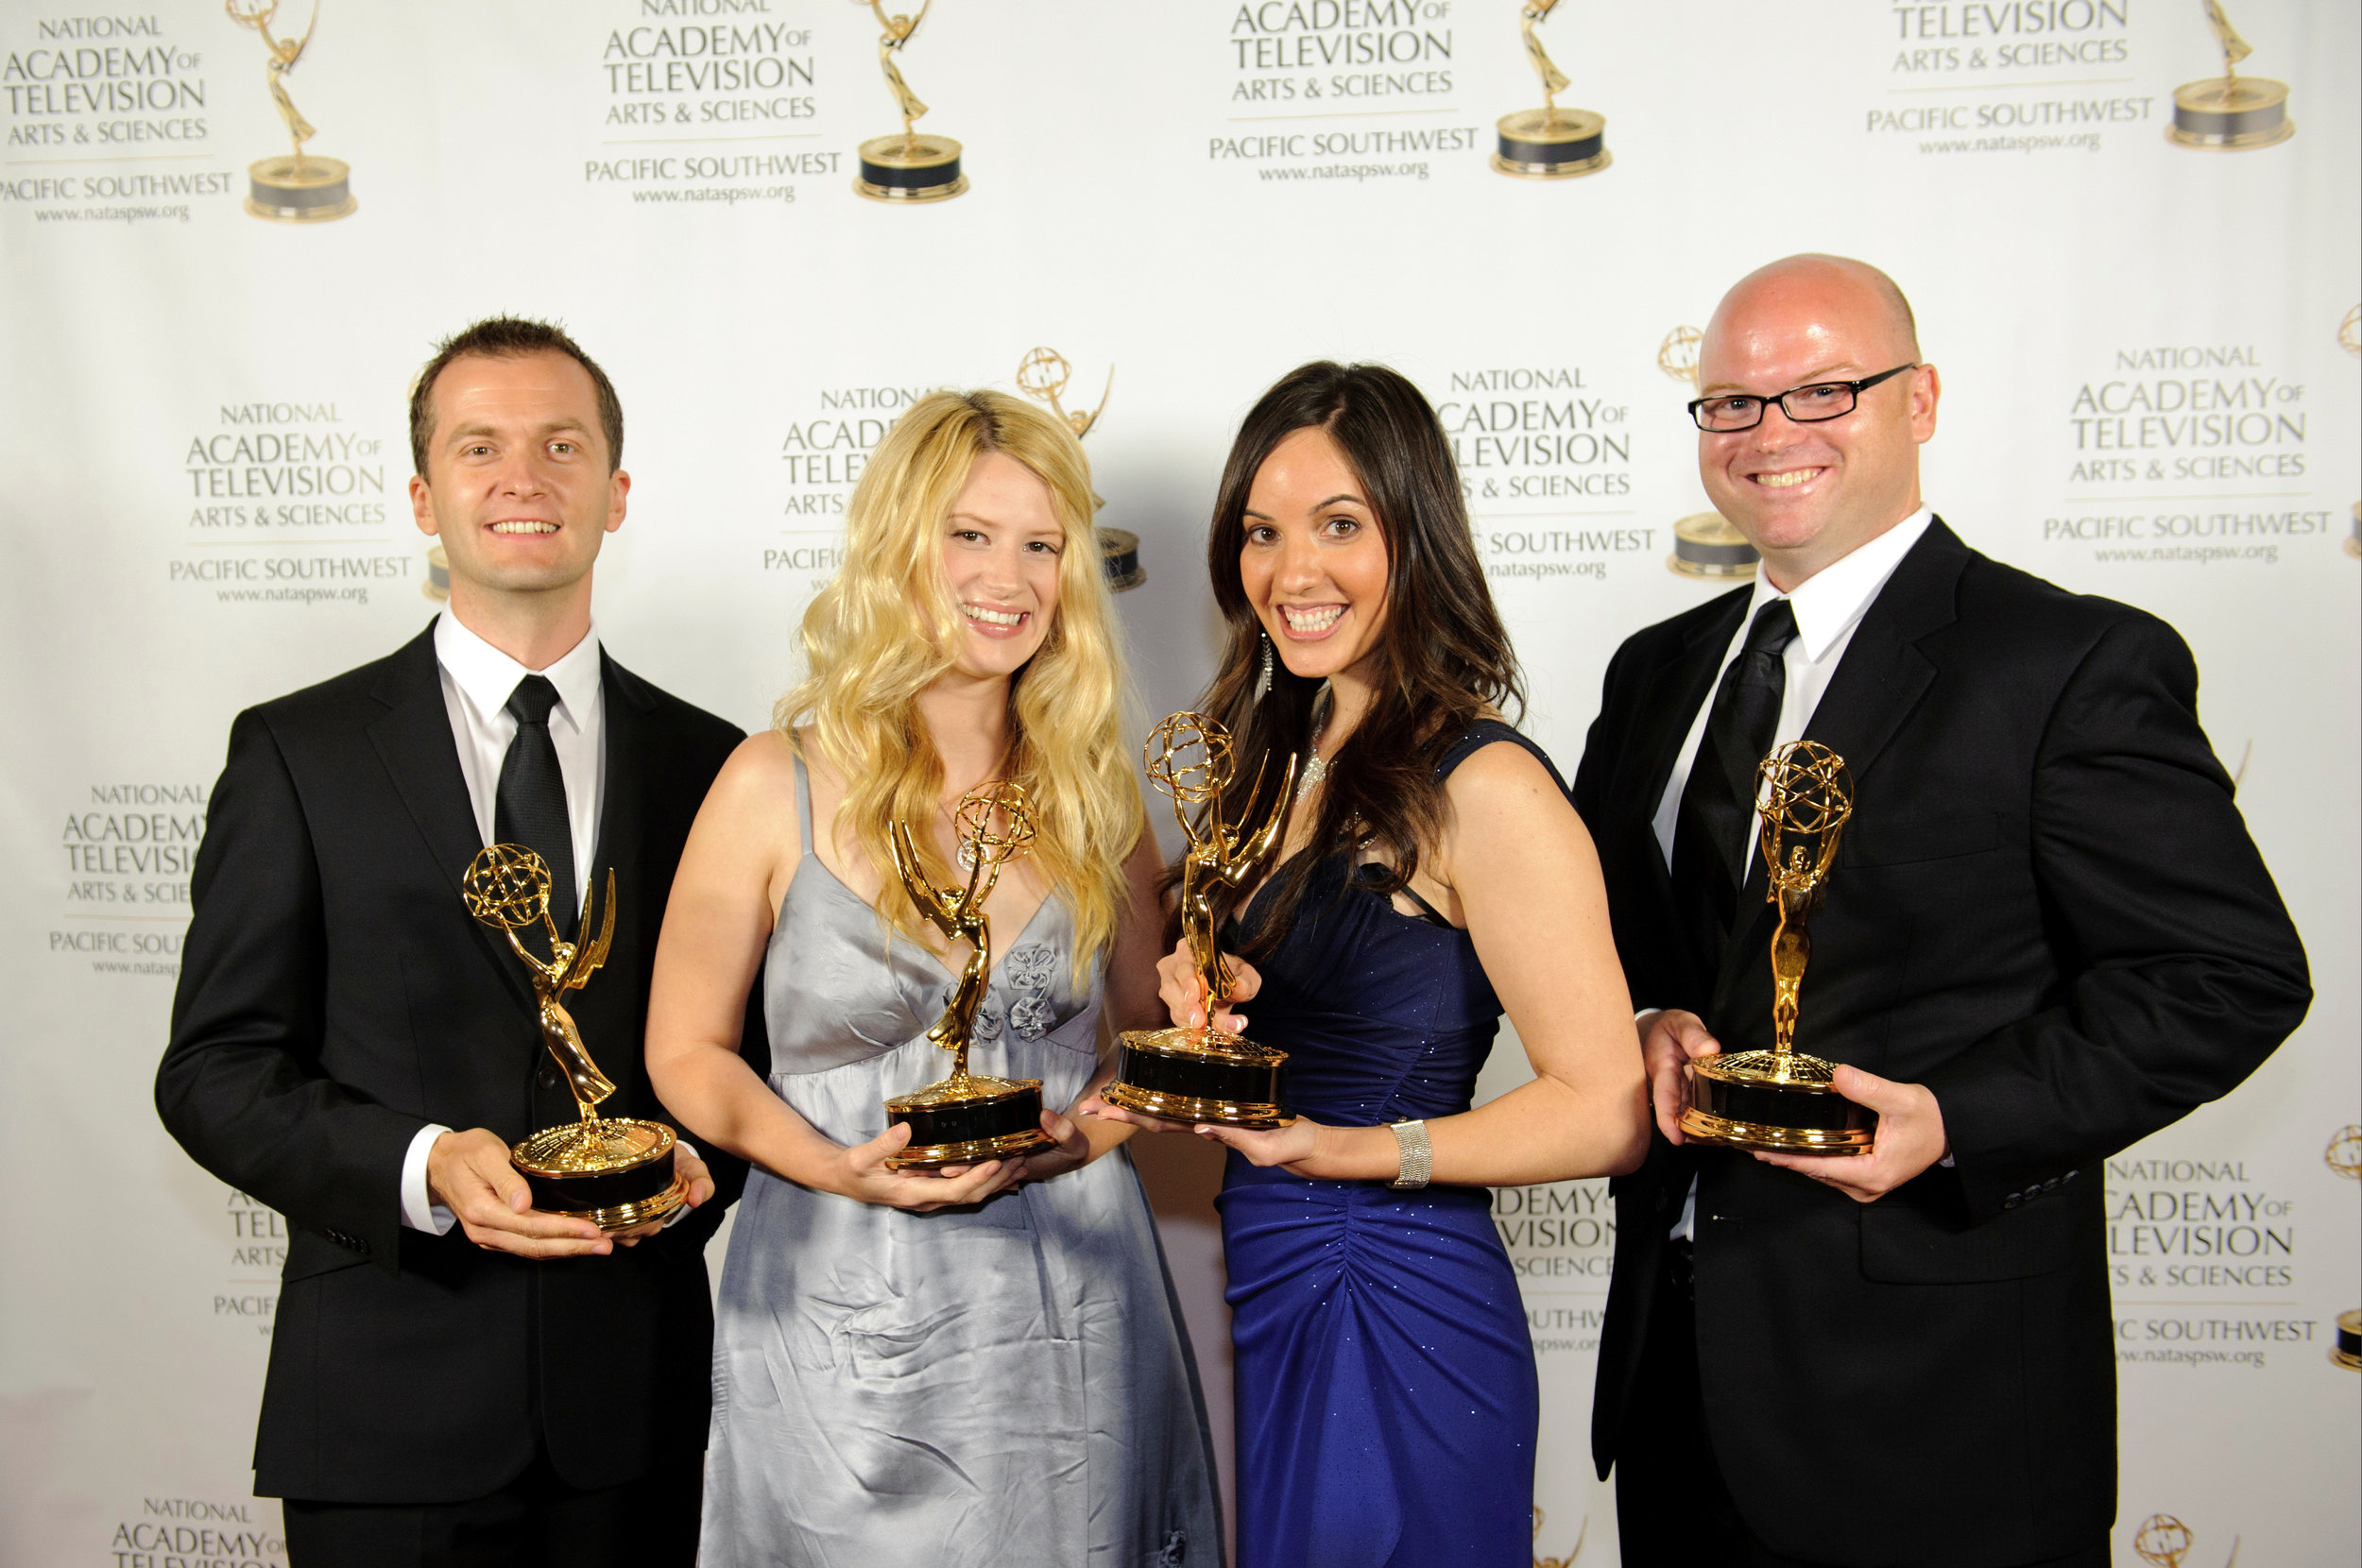 EmmyAwards-LLU-Team01.jpg